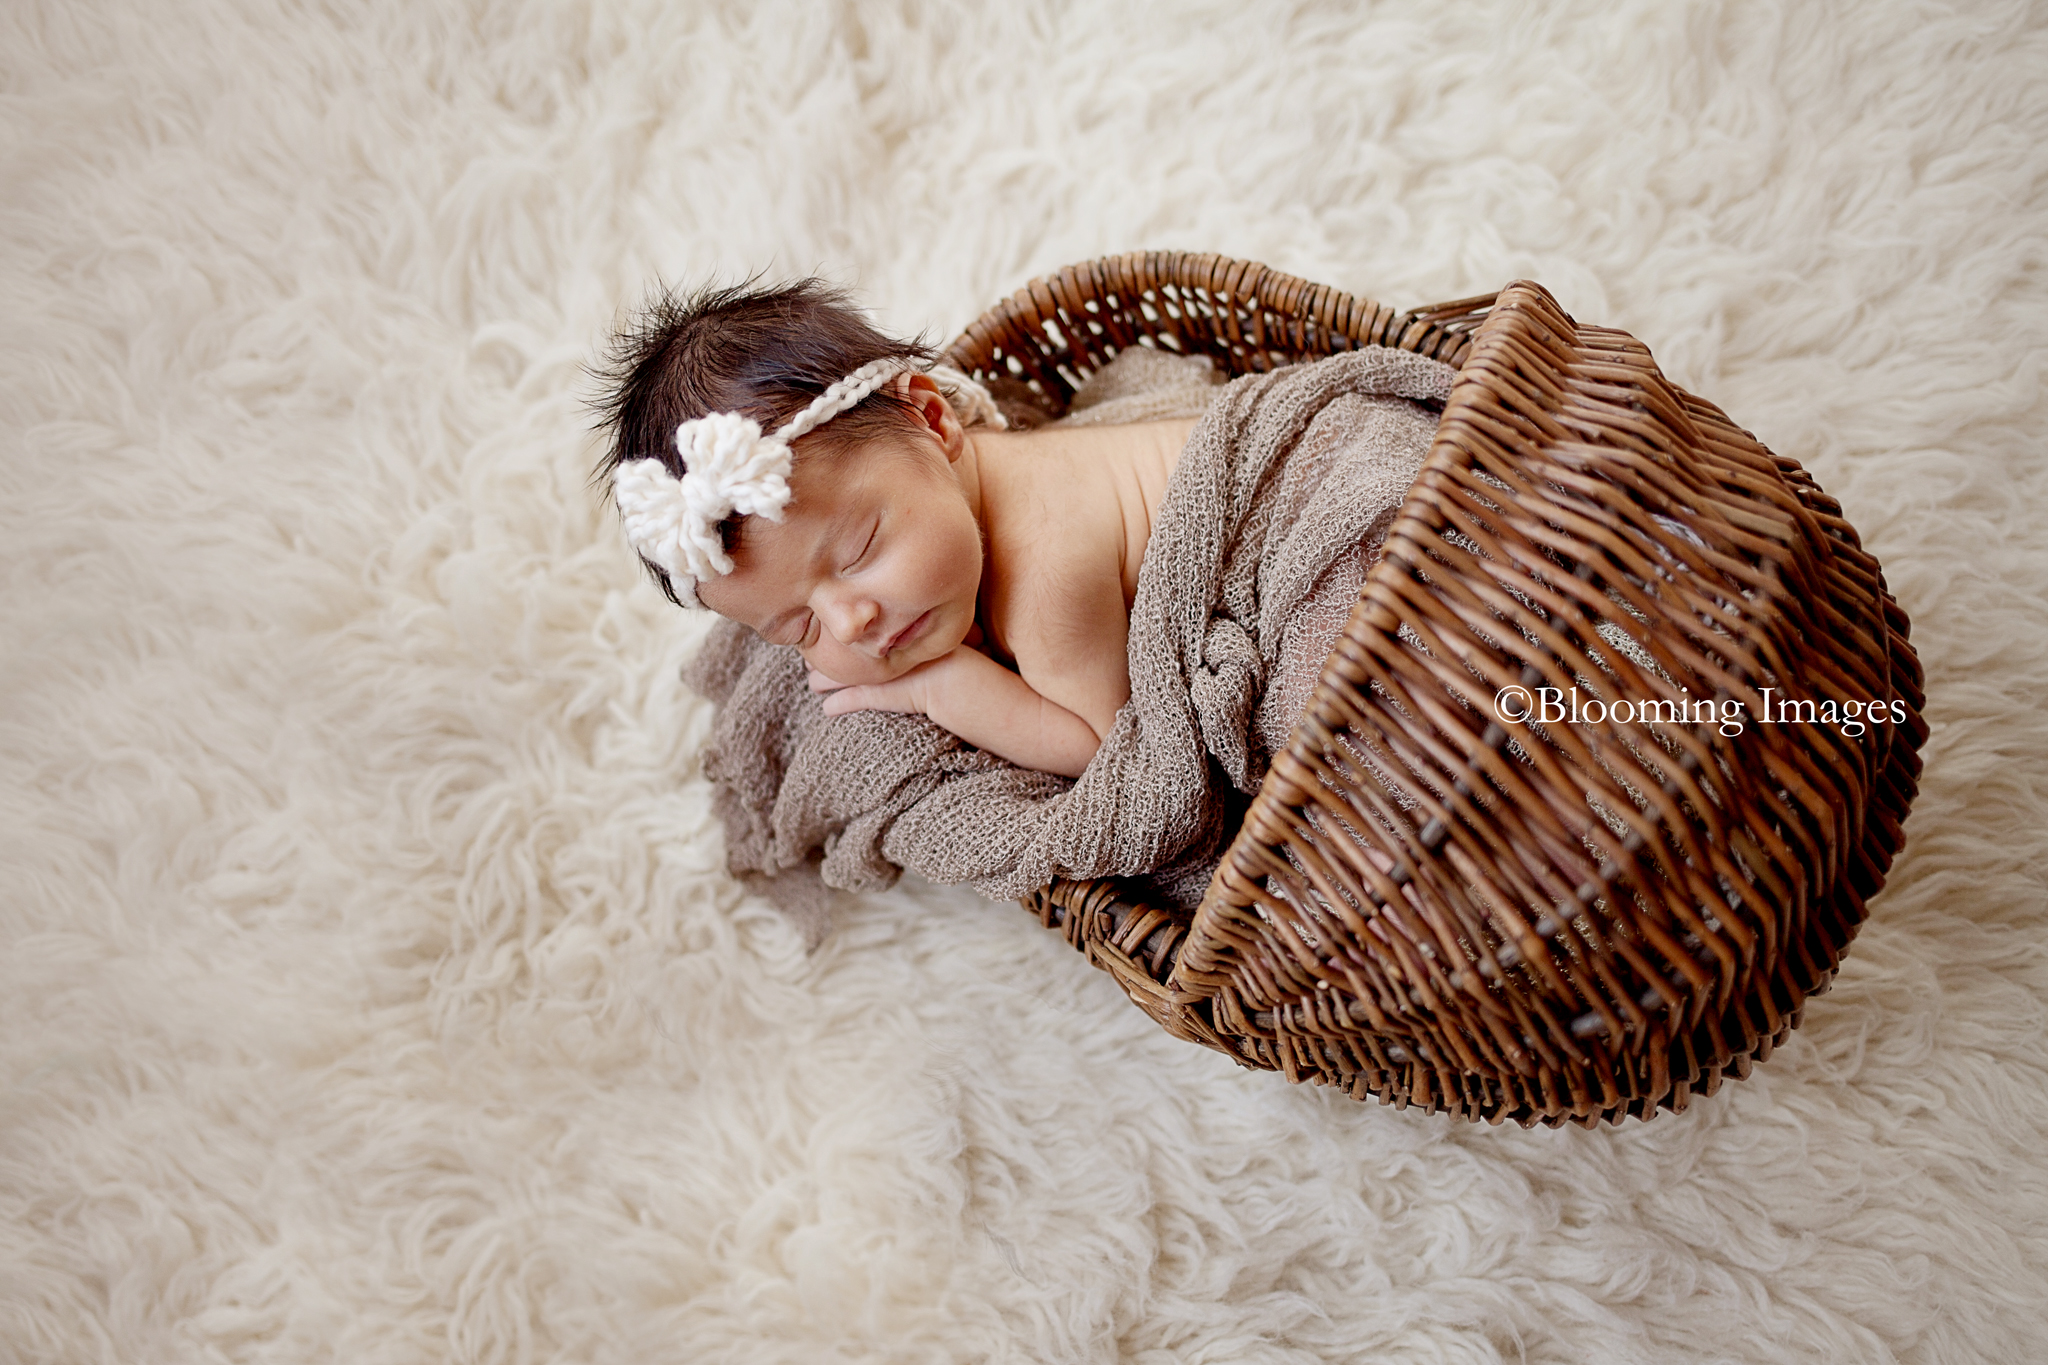 Albuquerque Newborn Photographer,Albuquerque Newborn Photographers, Newborn Photographers in Albuquerque, Newborn Photographer in Albuquerque, Santa Fe Newborn Photographers, Santa Fe Newborn Photographer